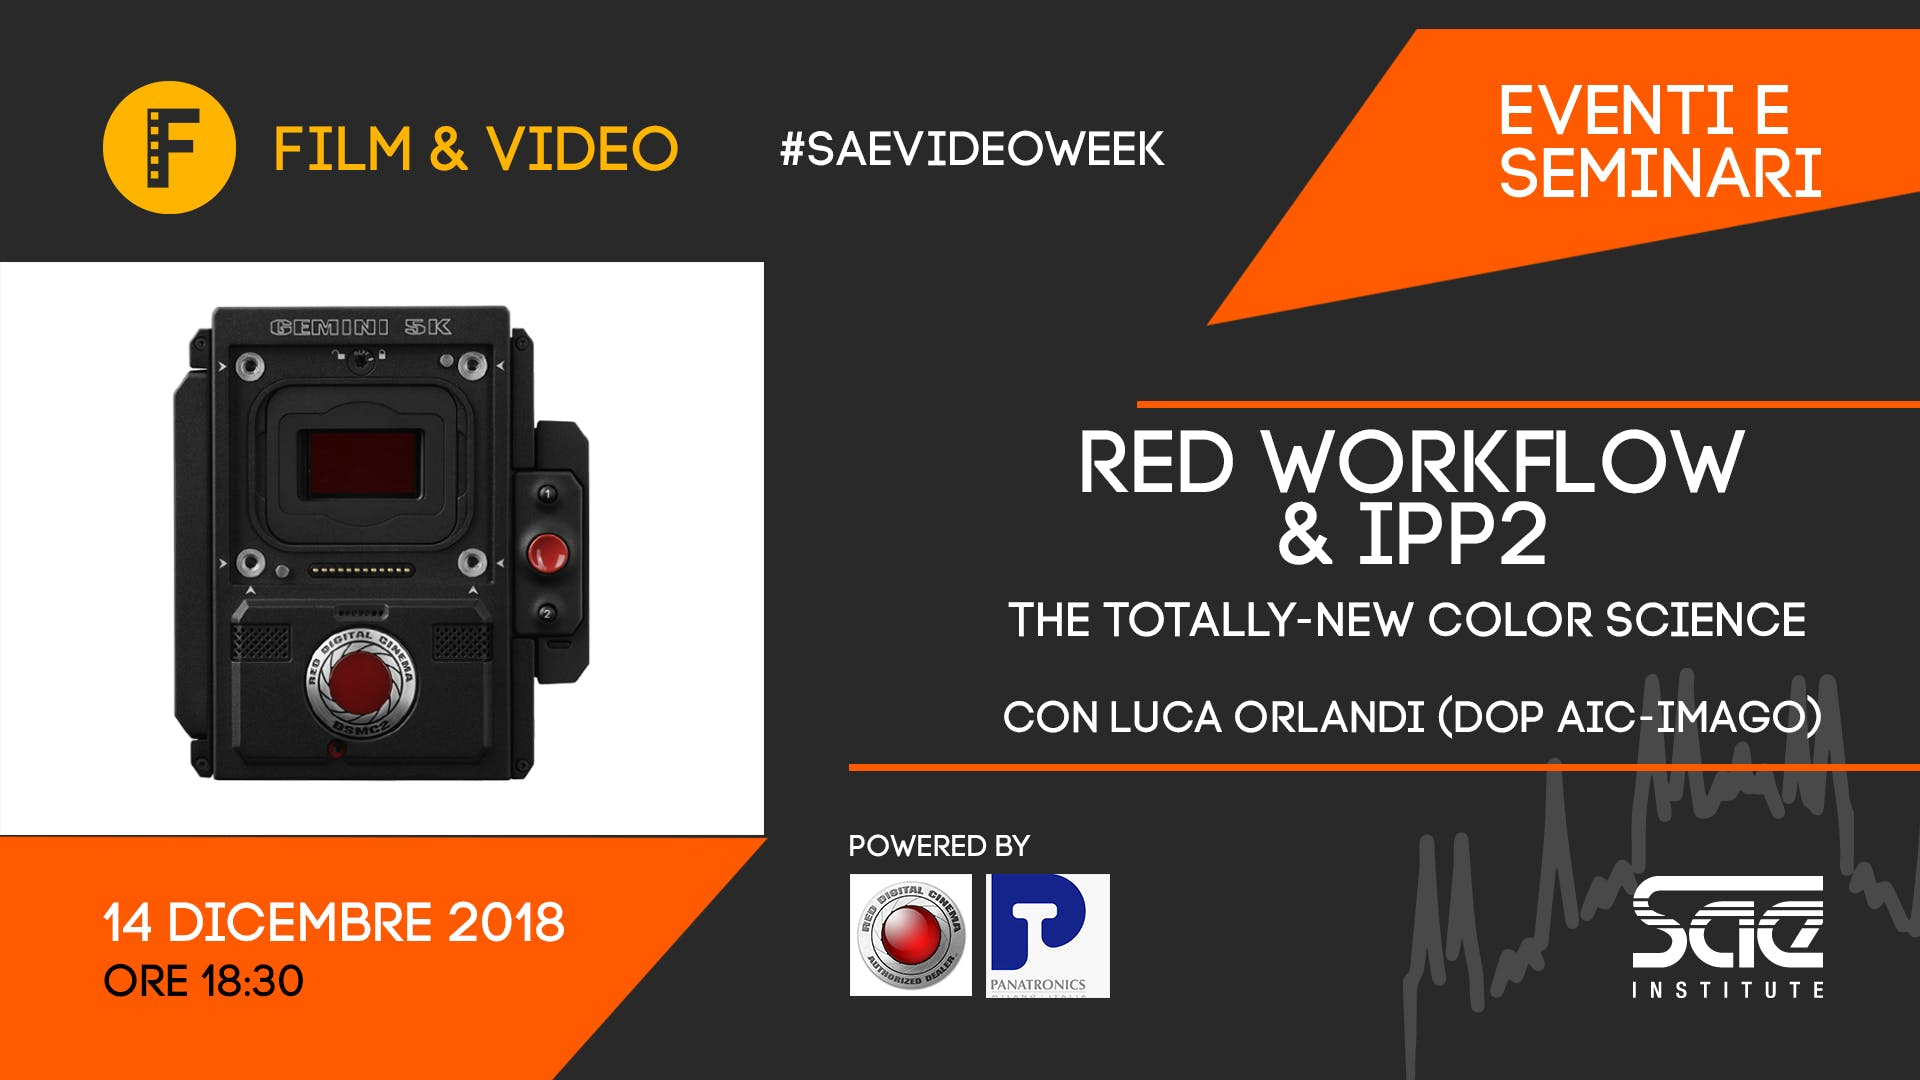 RED WORKFLOW & IPP2: THE TOTALLY-NEW COLOR SC